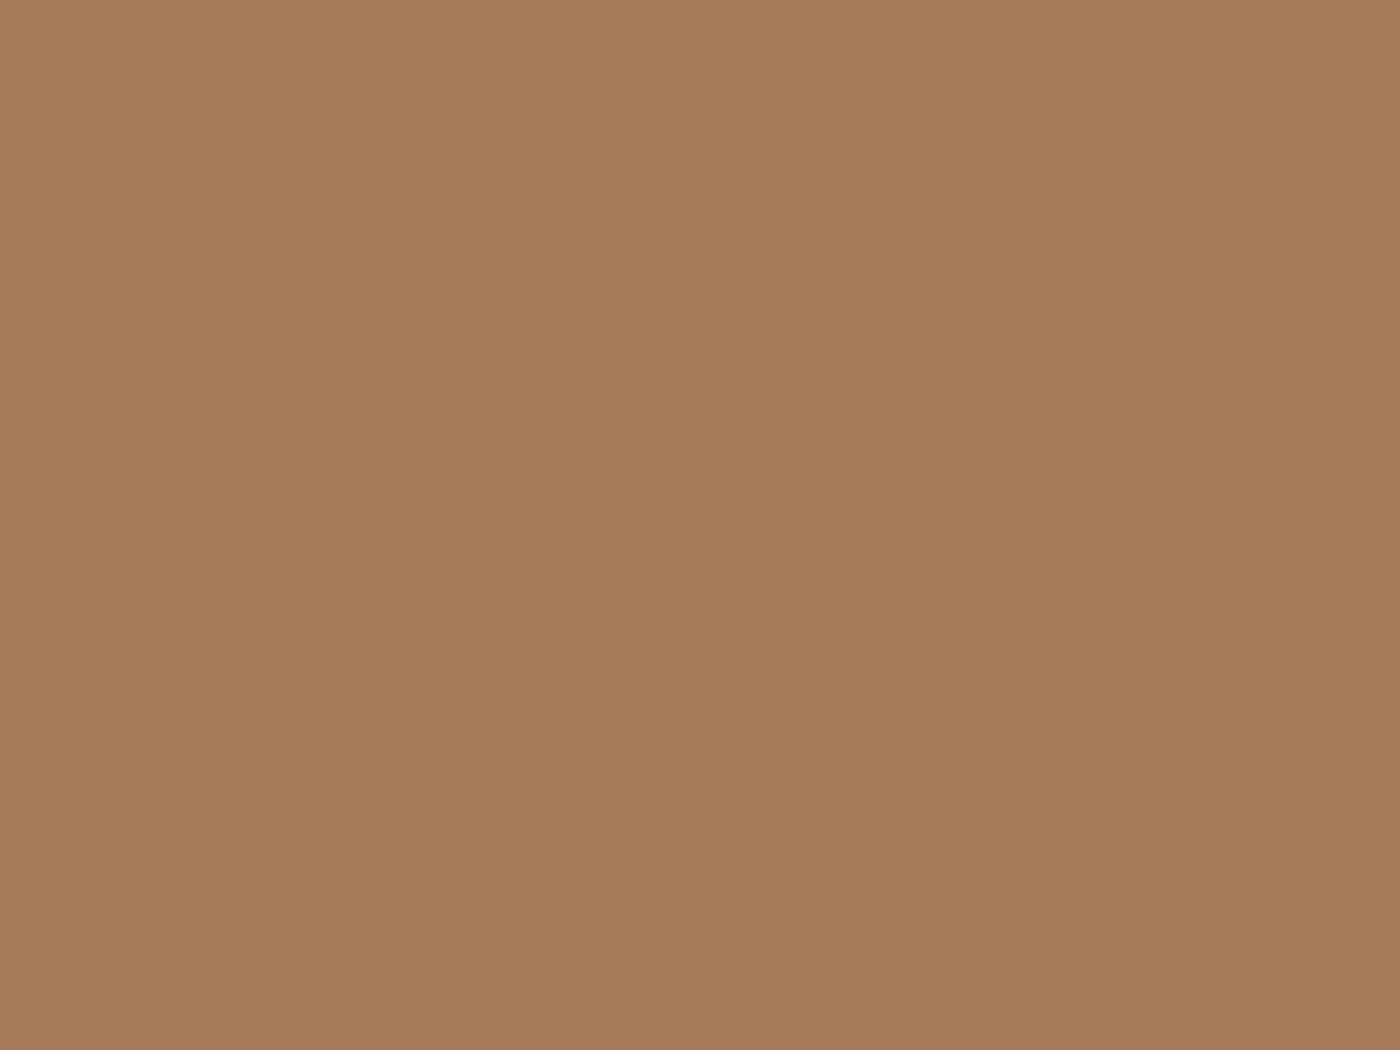 1400x1050 Cafe Au Lait Solid Color Background